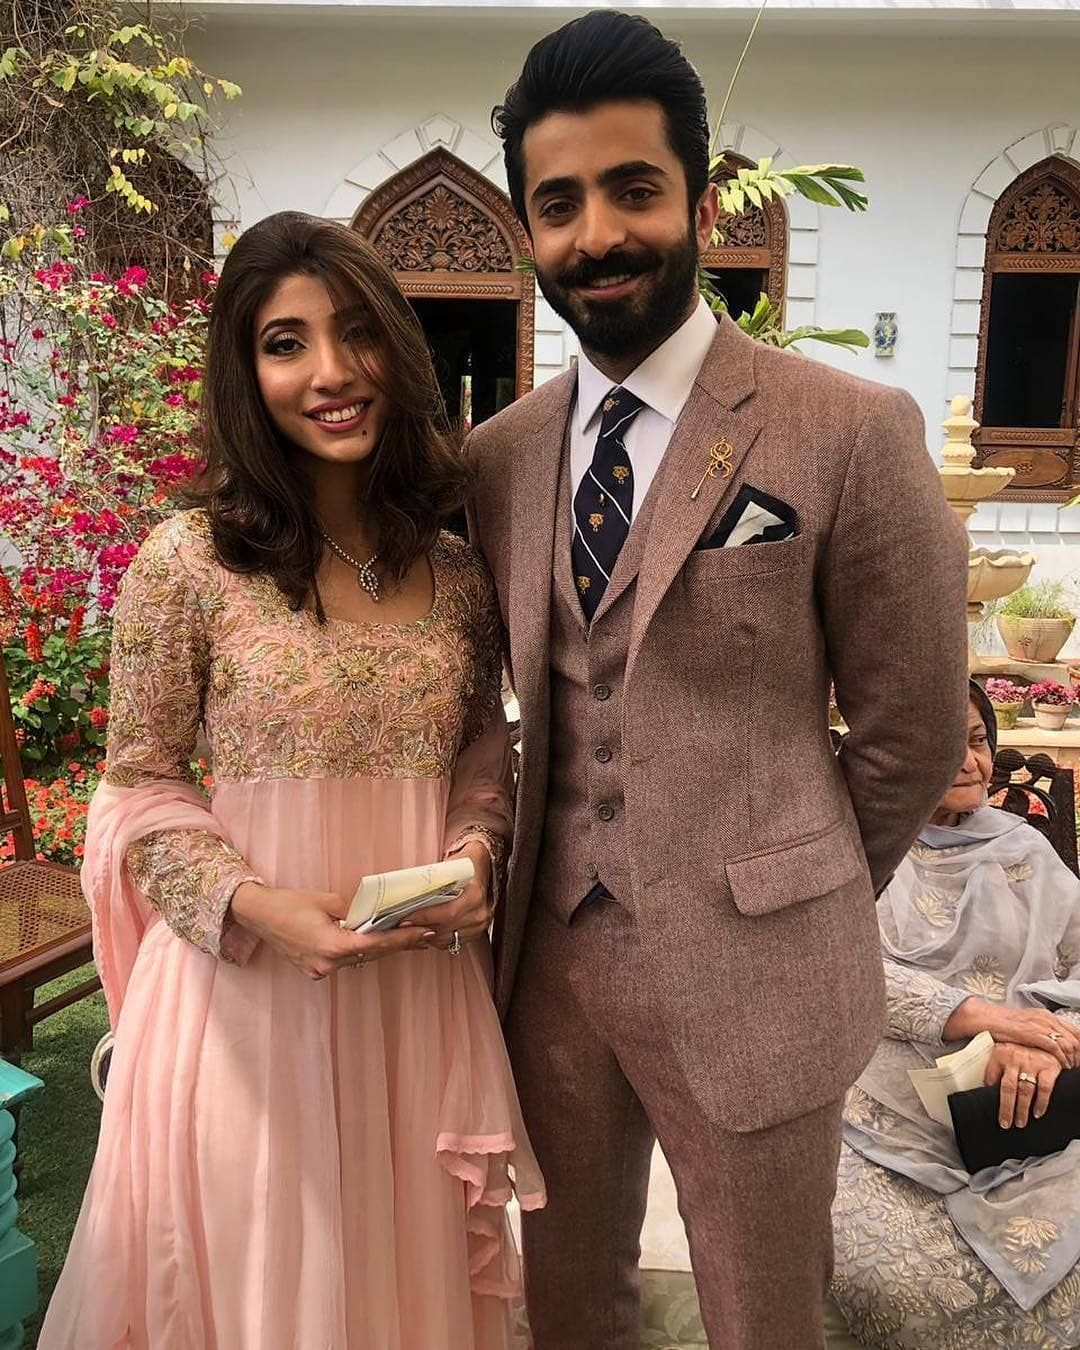 Shehryar Munawer With His Fiance Hala Somroo At Their Engagment Celebrities Formal Dresses For Weddings Celebrity Weddings